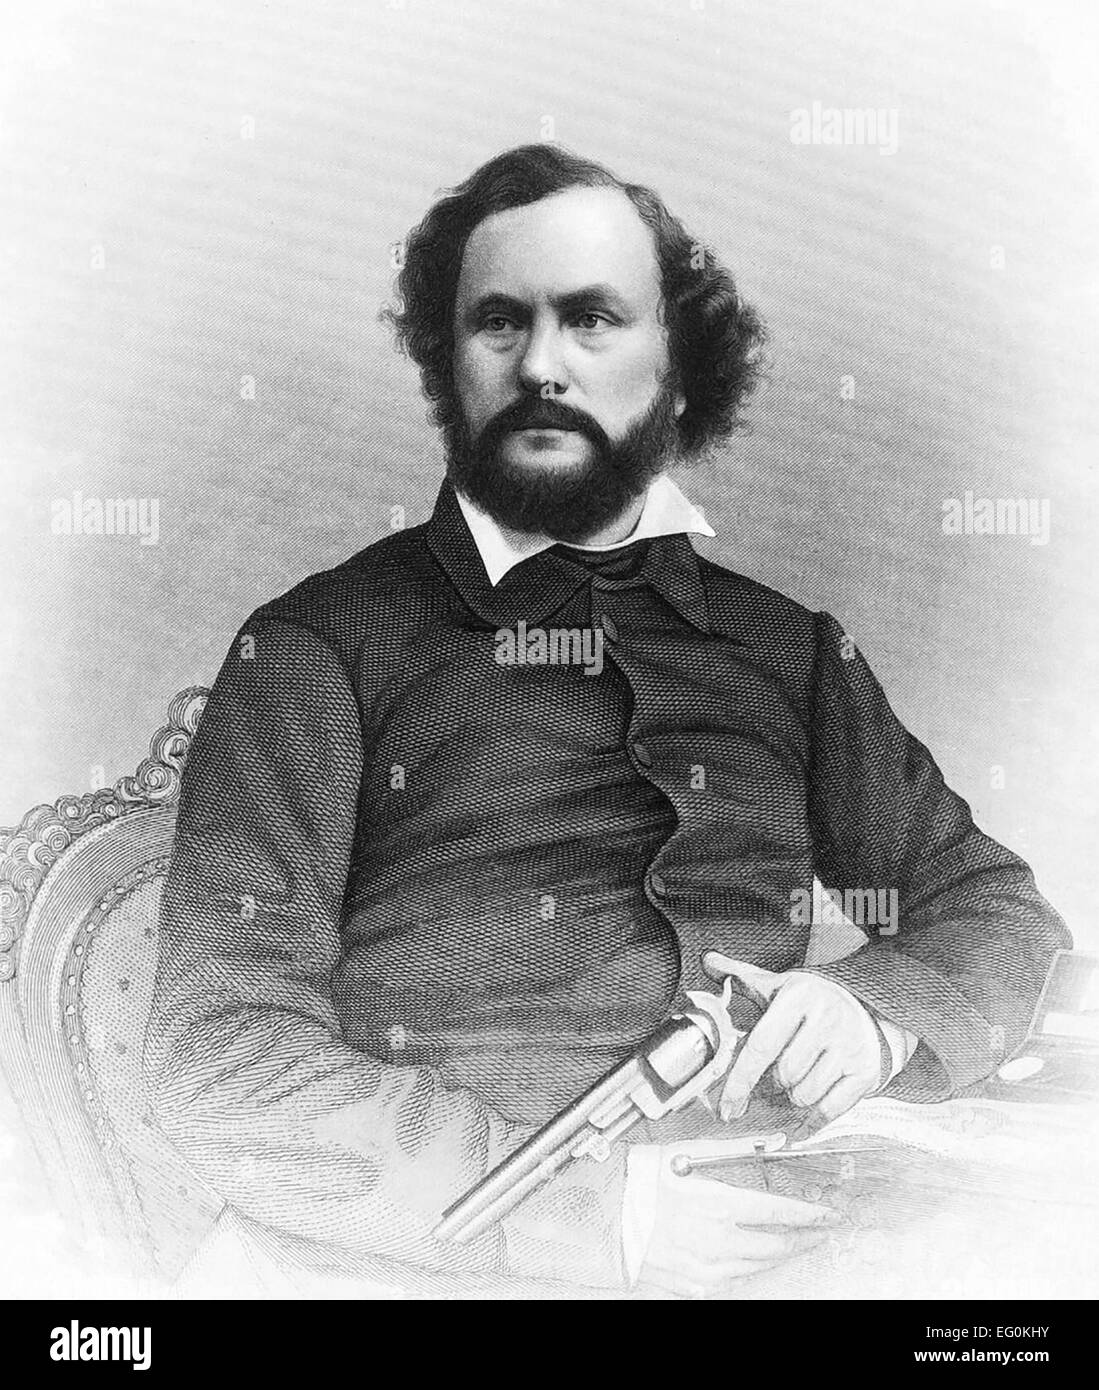 SAMUEL COLT (1814-1862) American inventor of the first mass production revolver seen here with an 1851 Naval Revolver - Stock Image